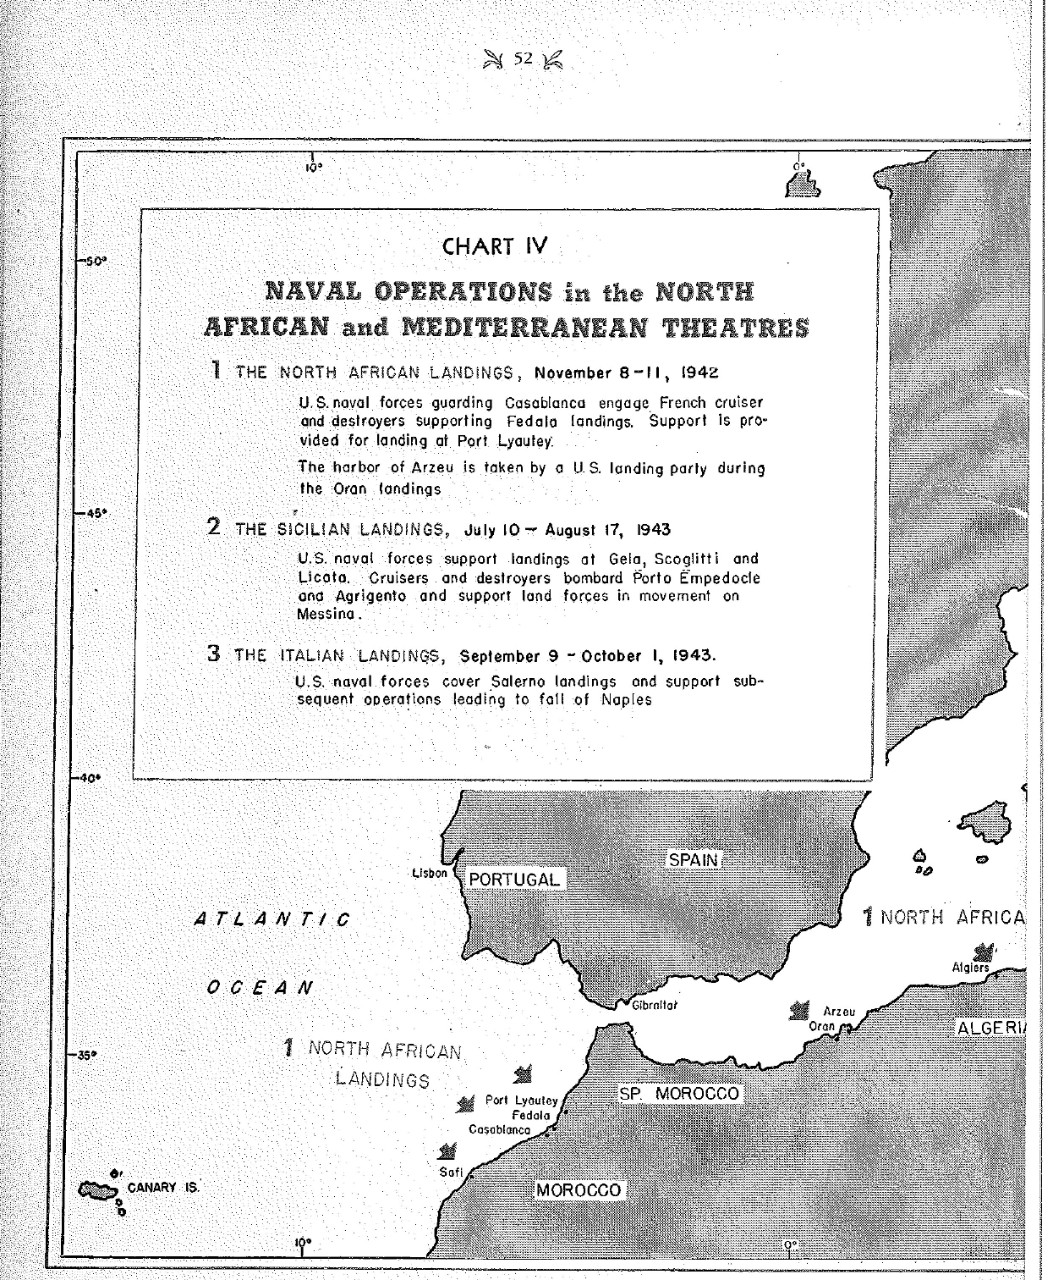 <p>Naval Operations in the North African and Mediterrranean Theatres, Chart IV&nbsp;</p>